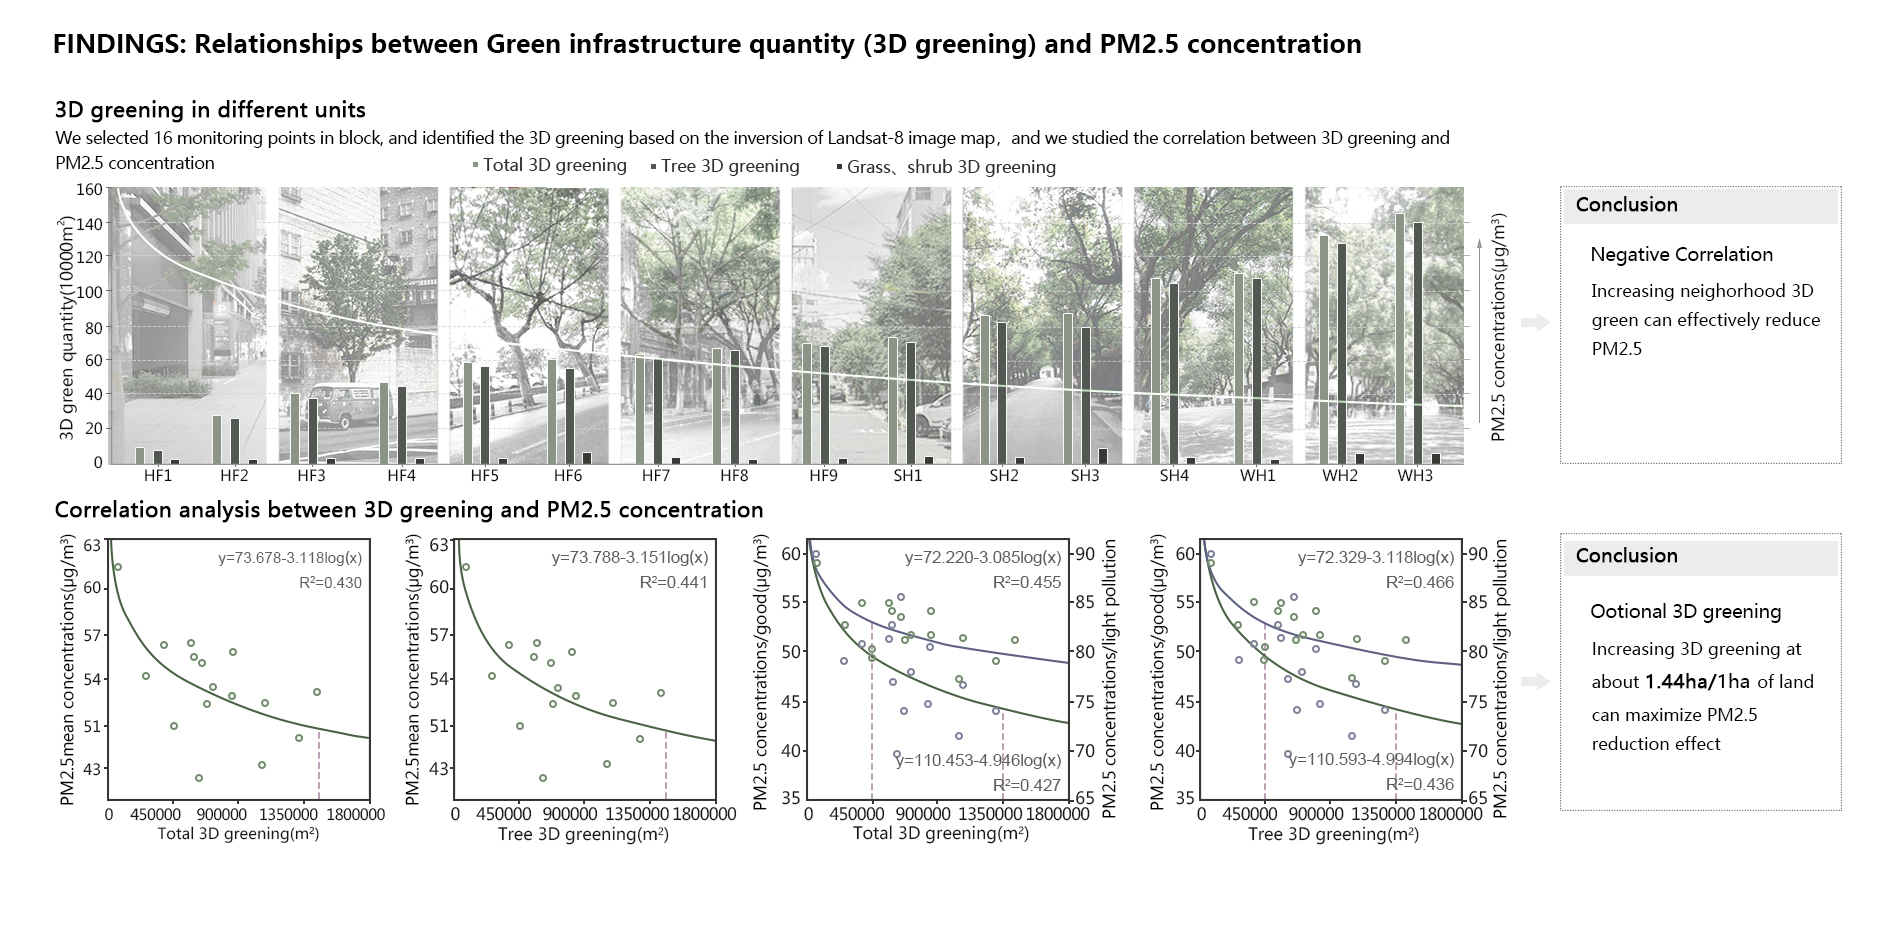 Findings: Relationships between green infrastructure quantity (3D greening) and PM2.5 concentration